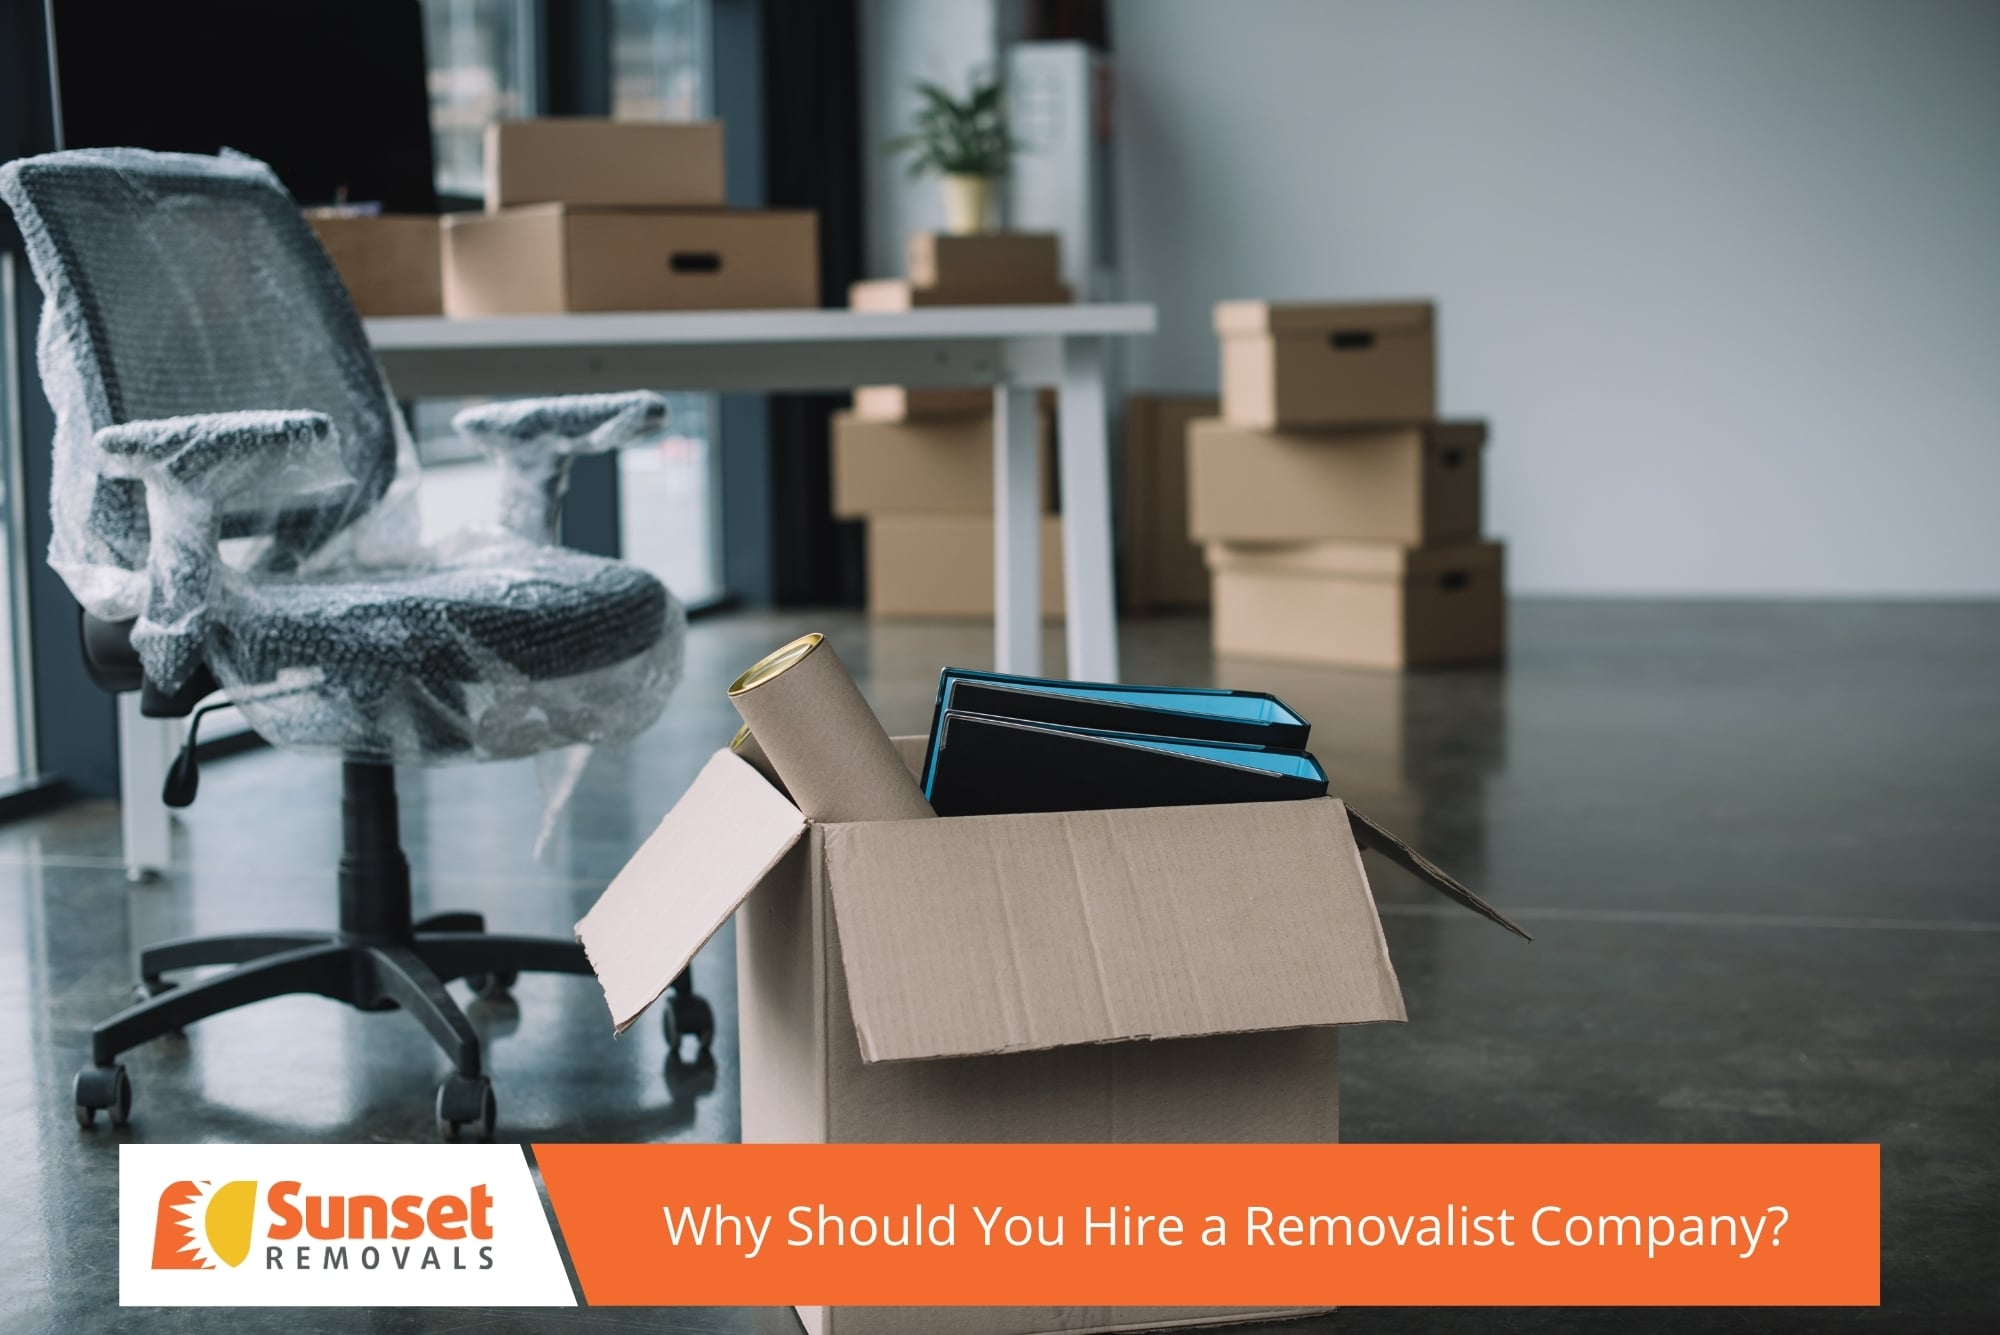 Why Should You Hire a Removalist Company